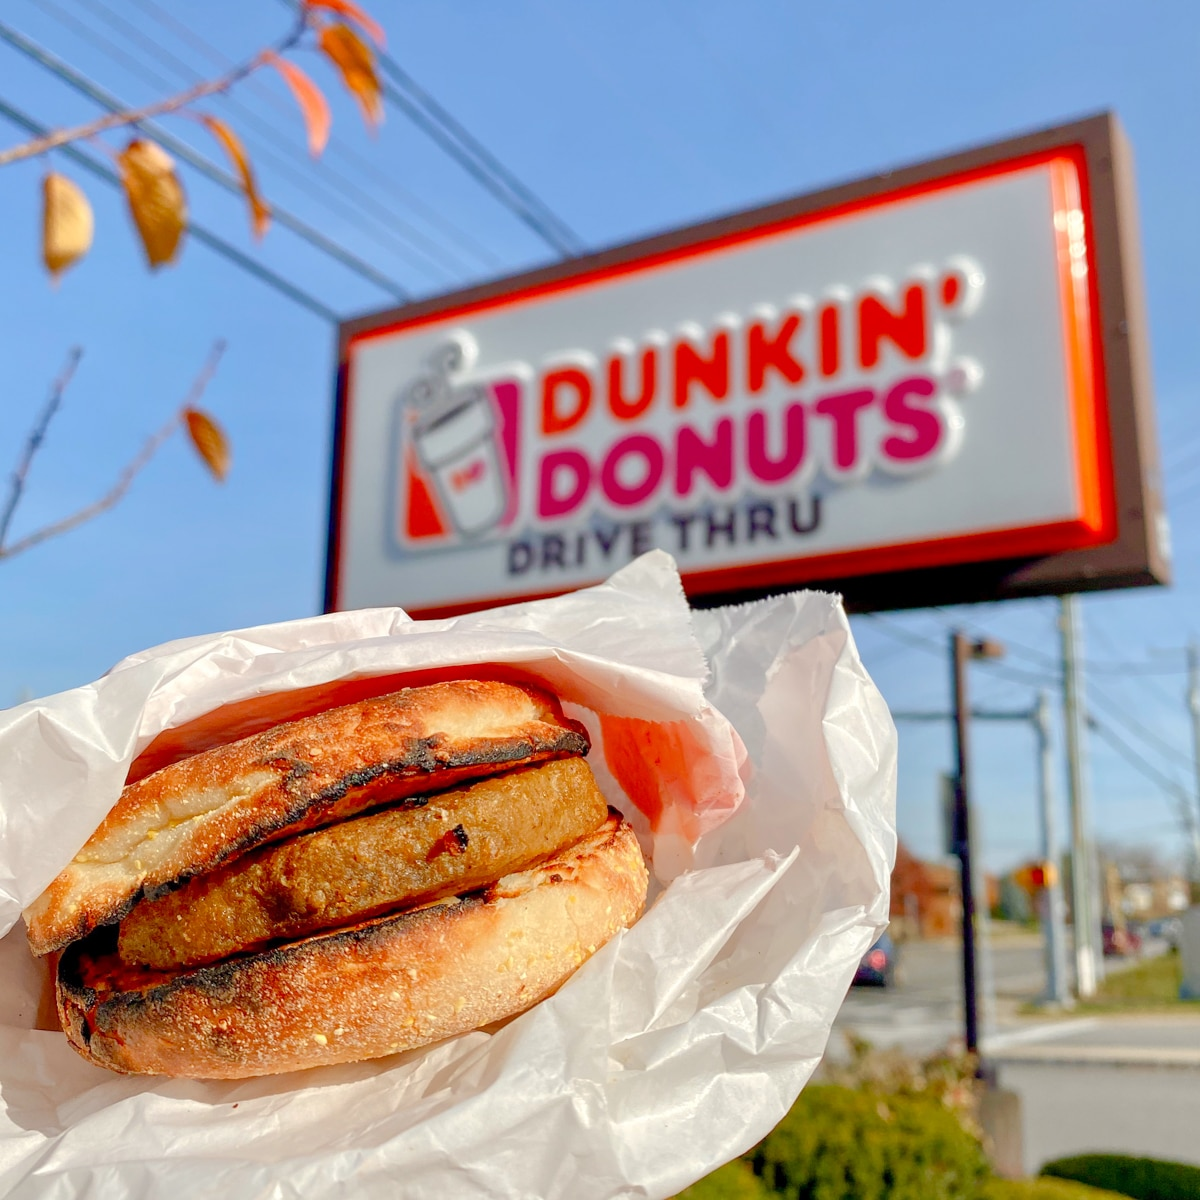 Vegan Beyond Sausage Sandwich at Dunkin Donuts